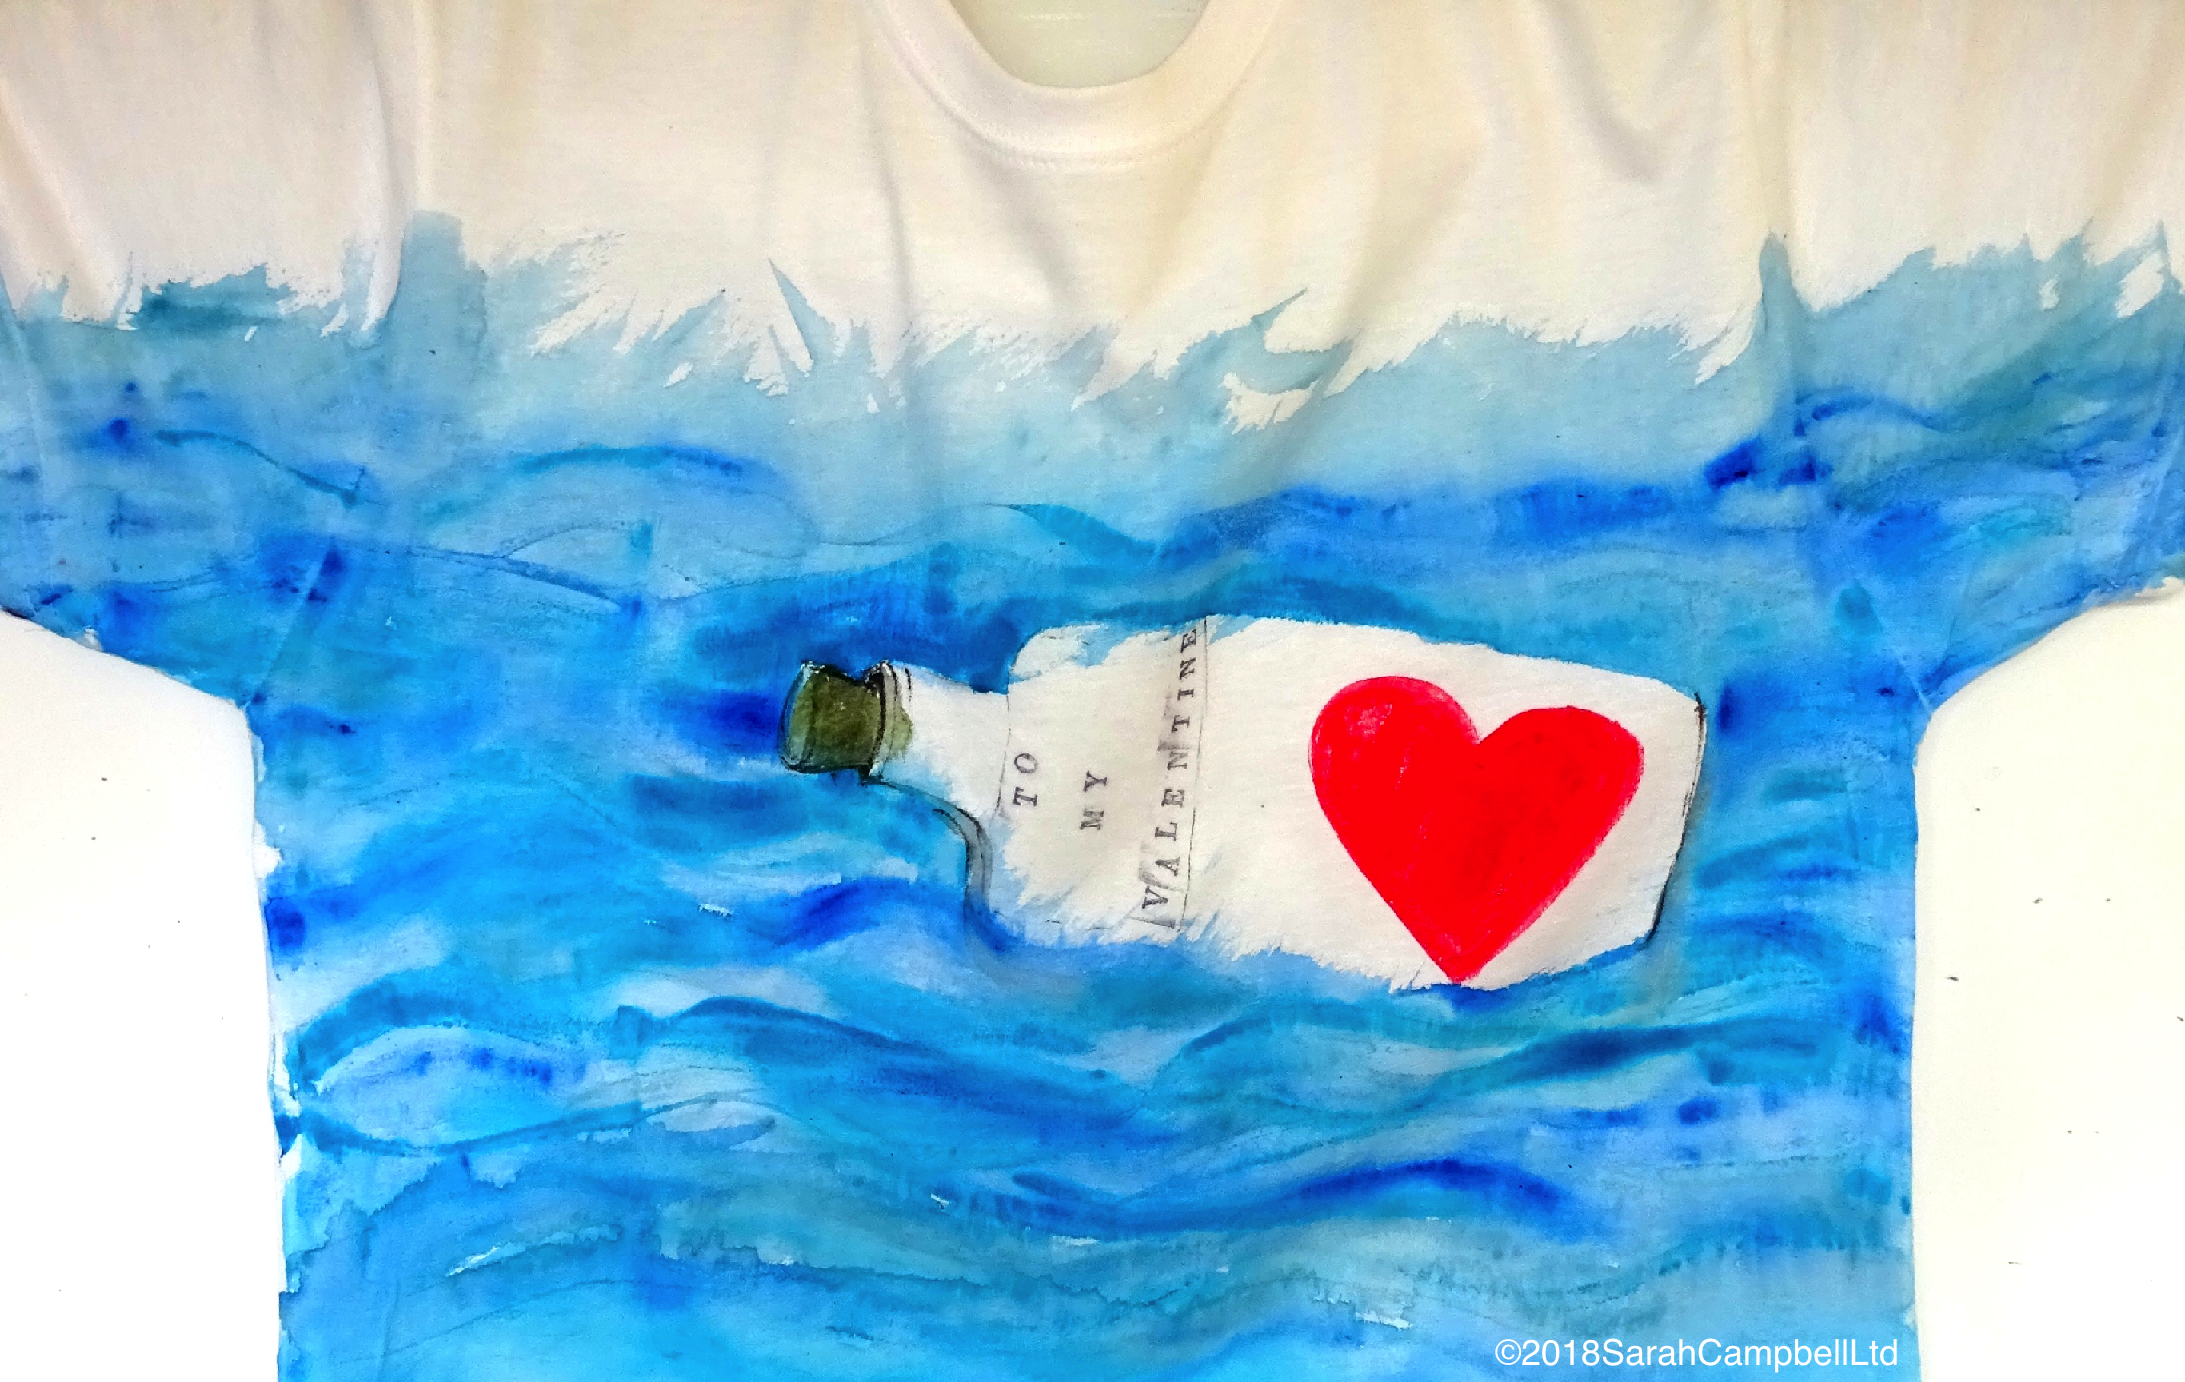 Tshirt message in a bottle